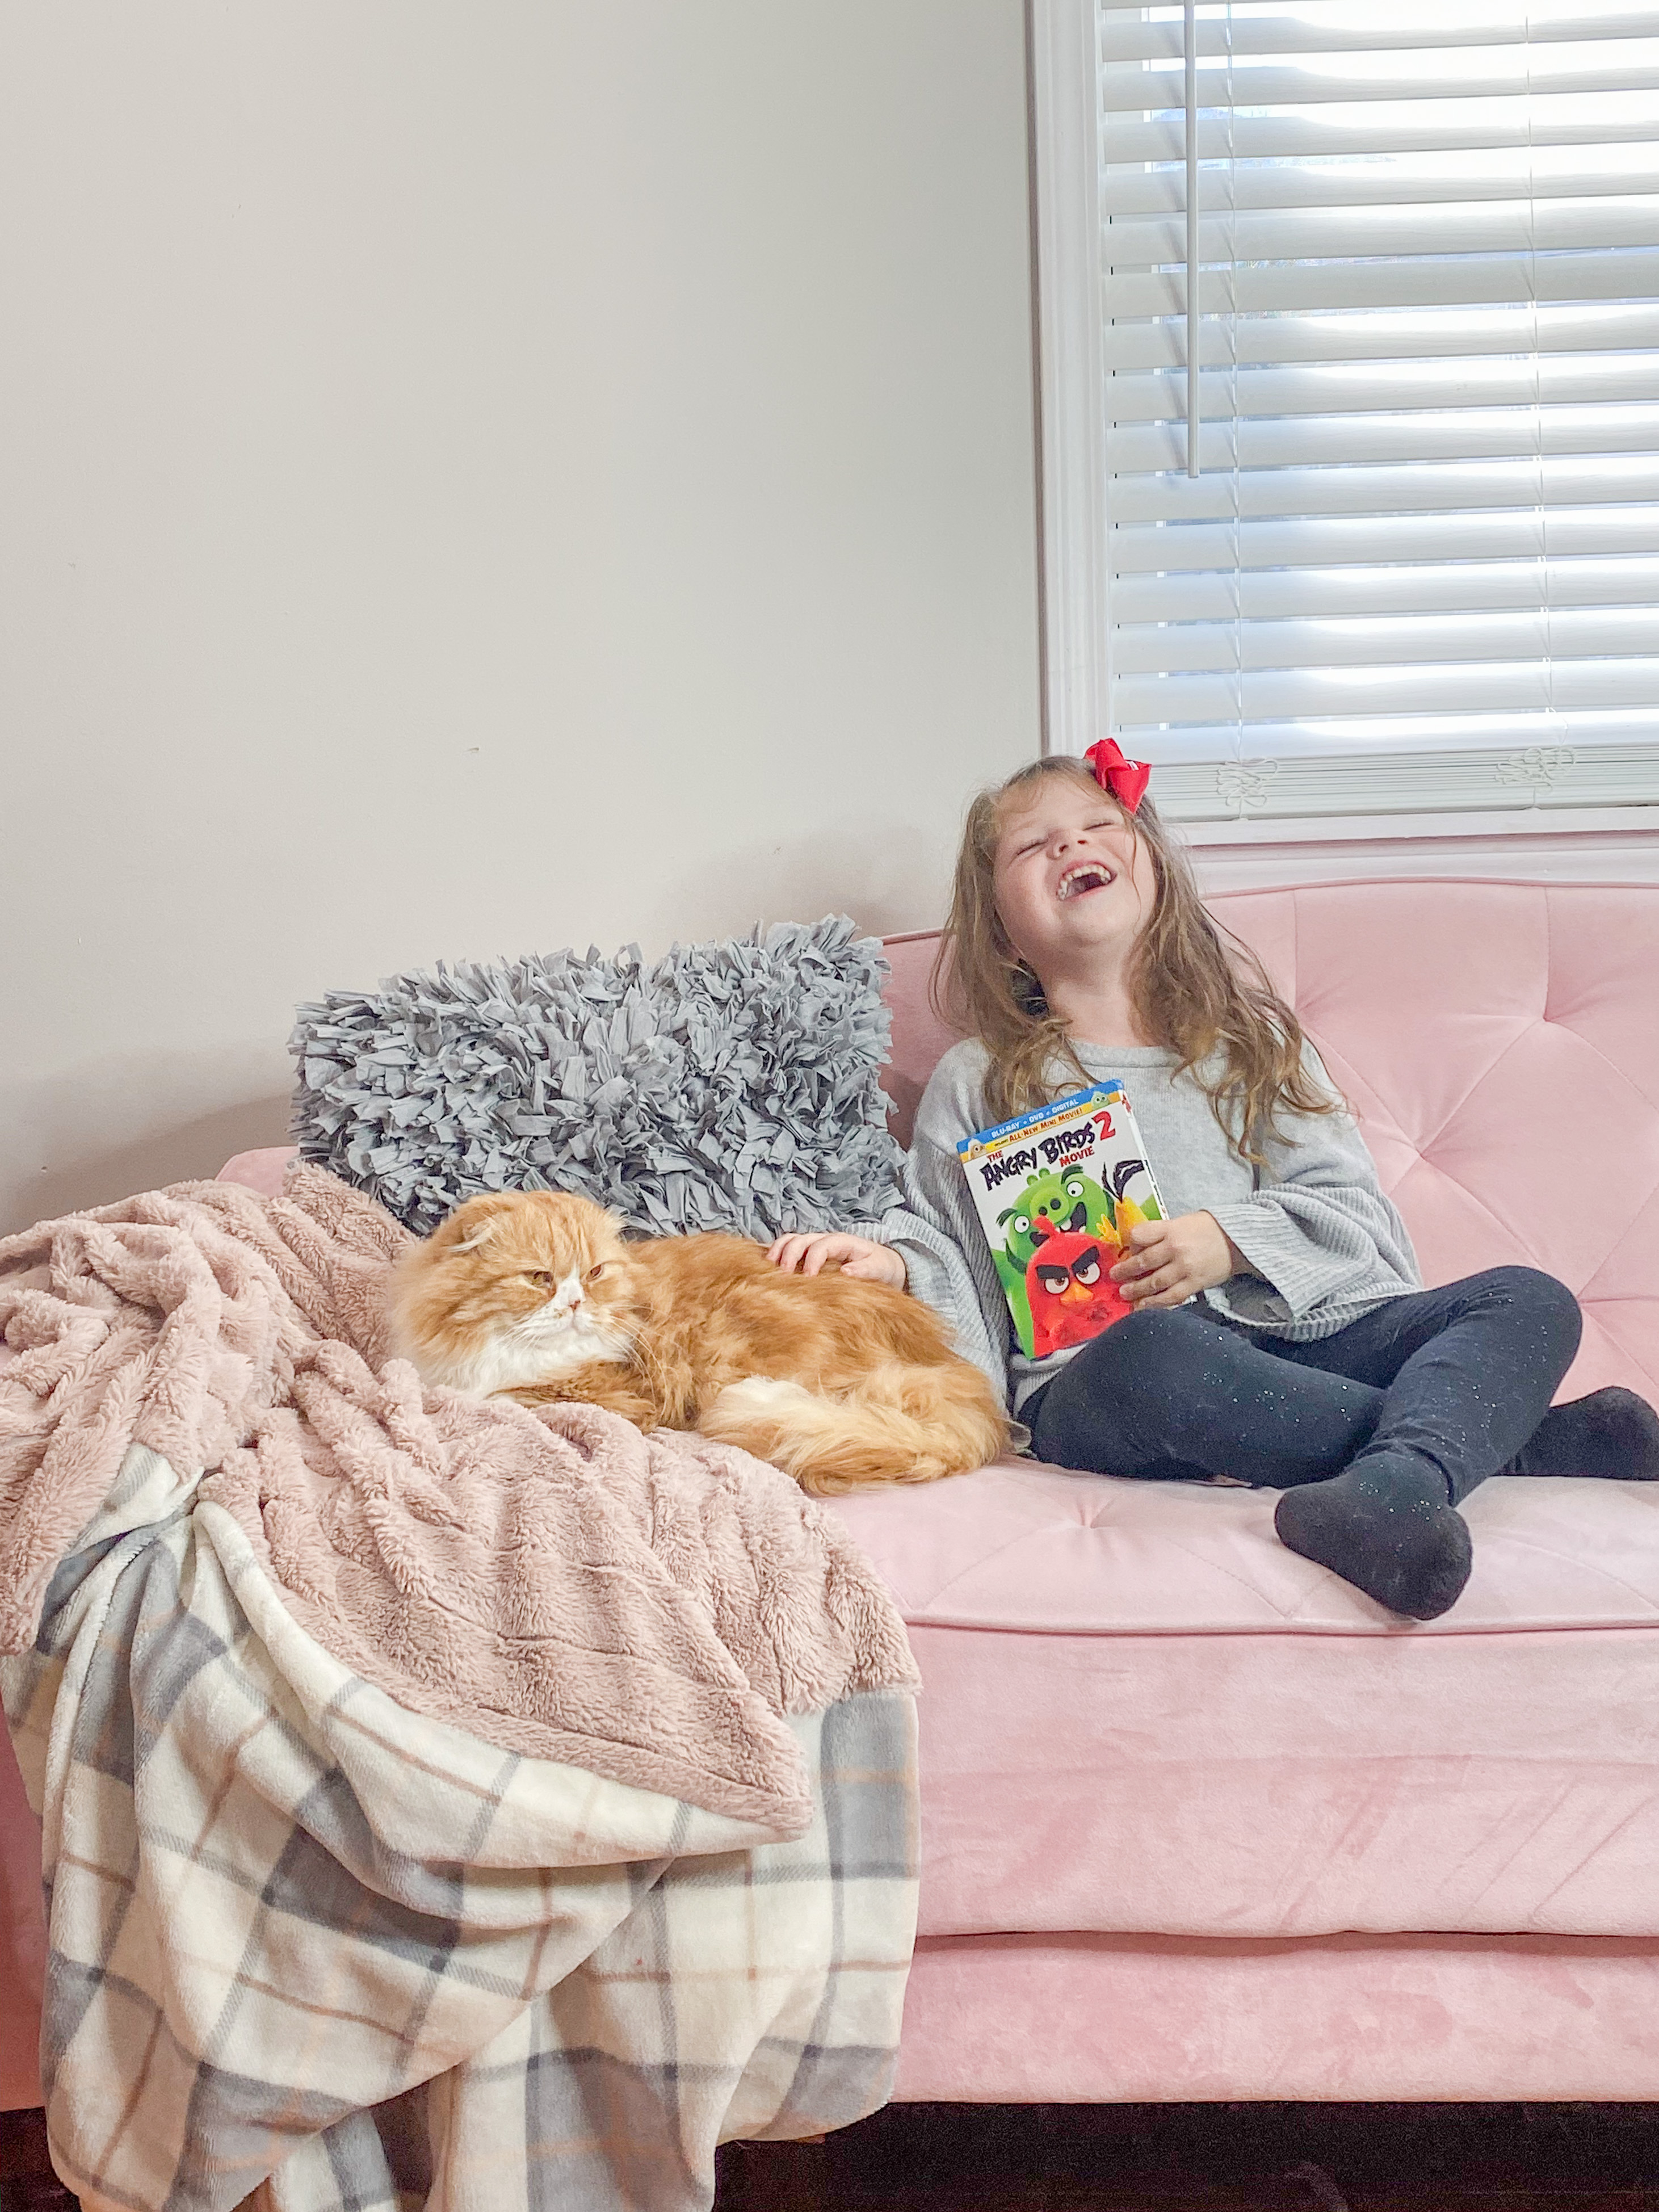 Girl sitting on couch with Angry Birds Blu-ray disc and cat